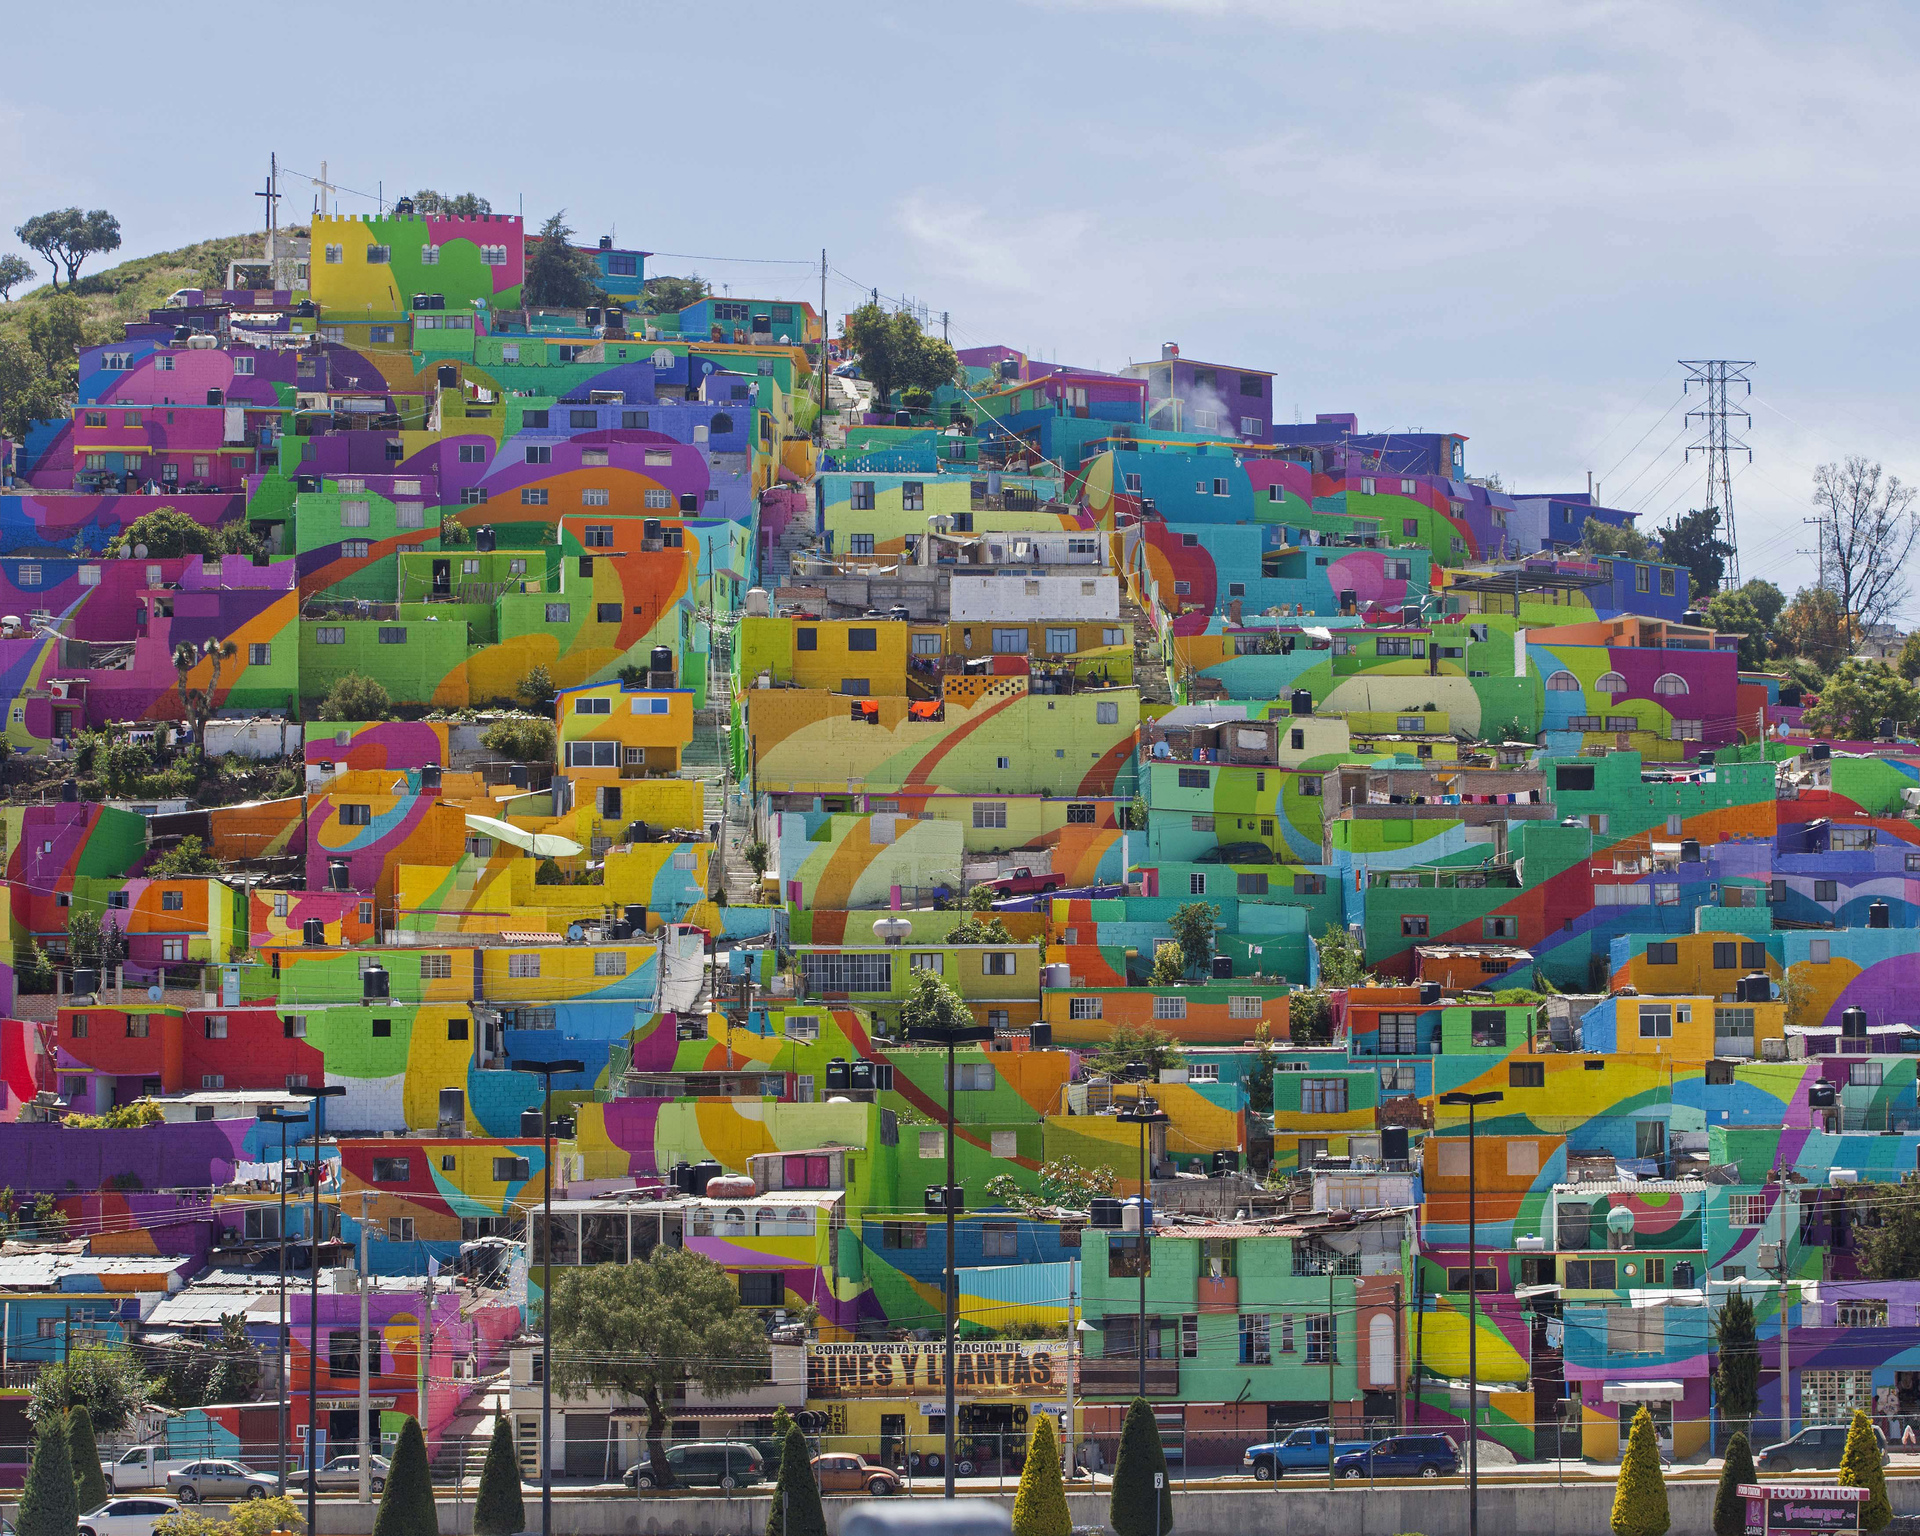 Hundreds of houses painted in bright colors in what organizers claim is Mexico's largest mural, is part of a government-sponsored project is called Pachuca Paints Itself, in the Palmitas neighborhood, in Pachuca, Mexico, Thursday, July 30, 2015. German Crew is the artist collective responsible for painting the mural project. Director Enrique Gomez, who goes by MYBE, said the crew has painted 1,500 square meters with 20,000 liters of paint. The project aims to bring the community together and rehabilitate the area. (AP Photo/Sofia Jaramillo)